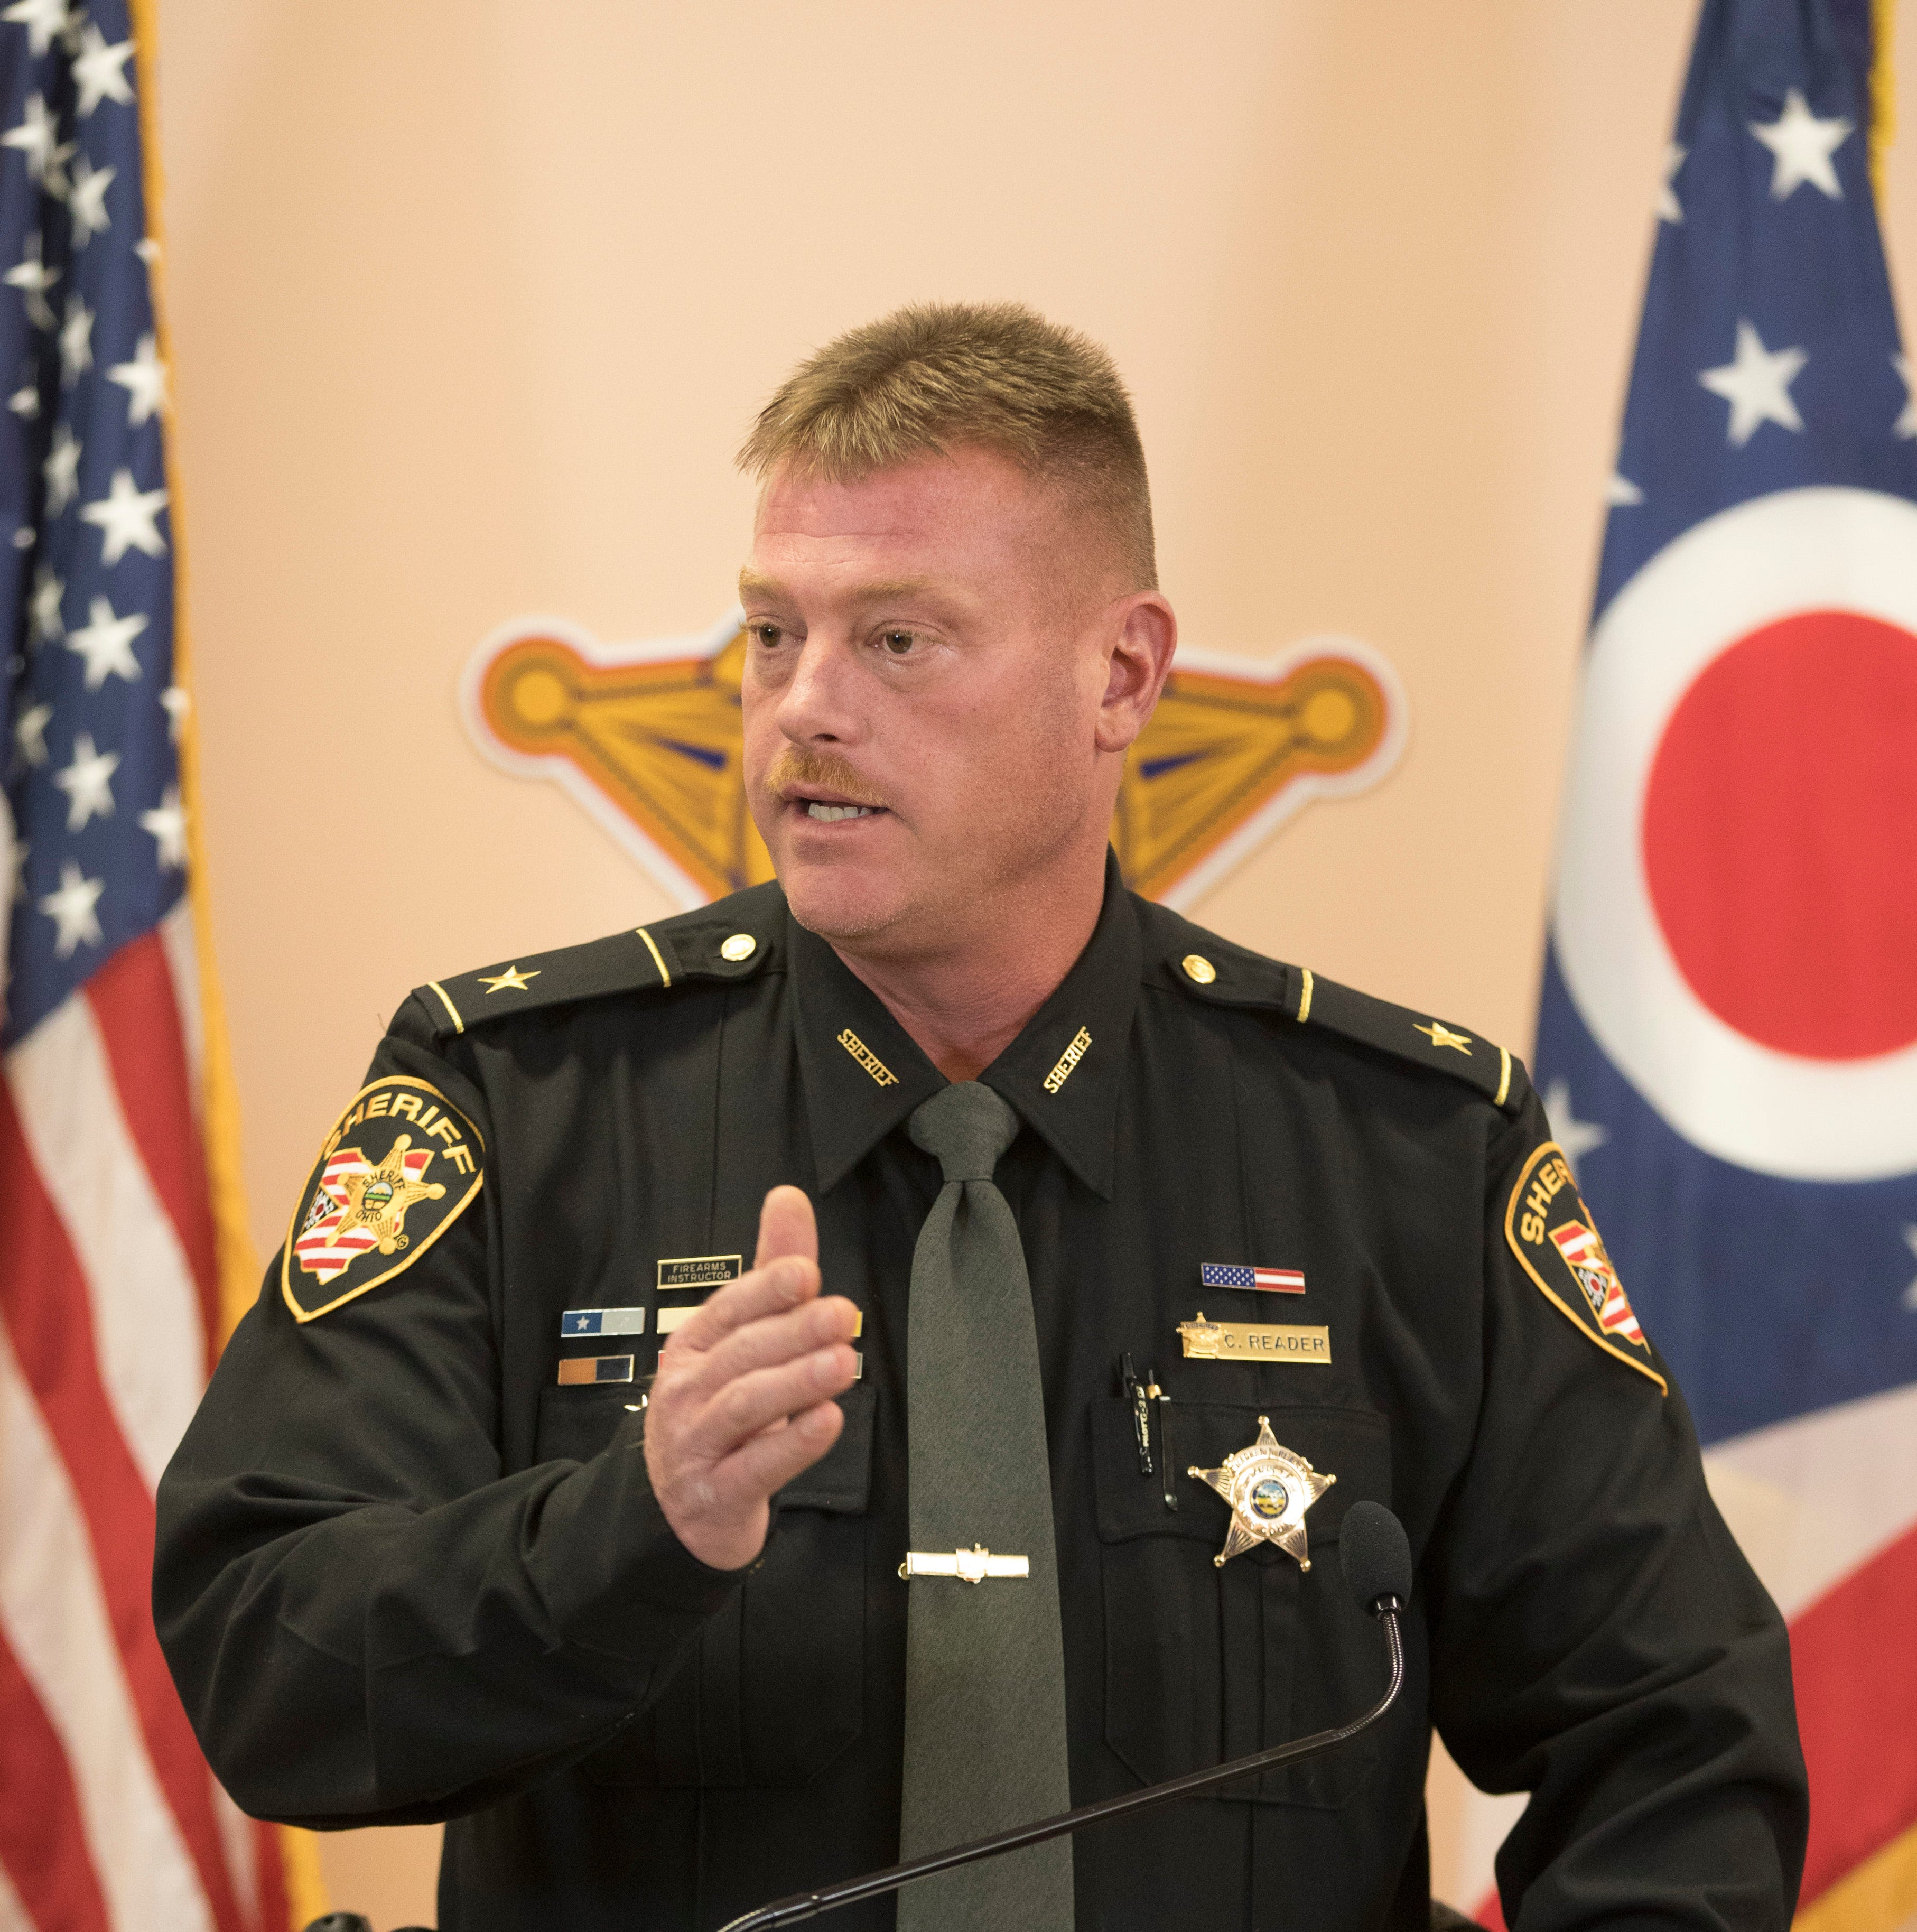 Pike County Sheriff's Office being investigated for alleged misconduct